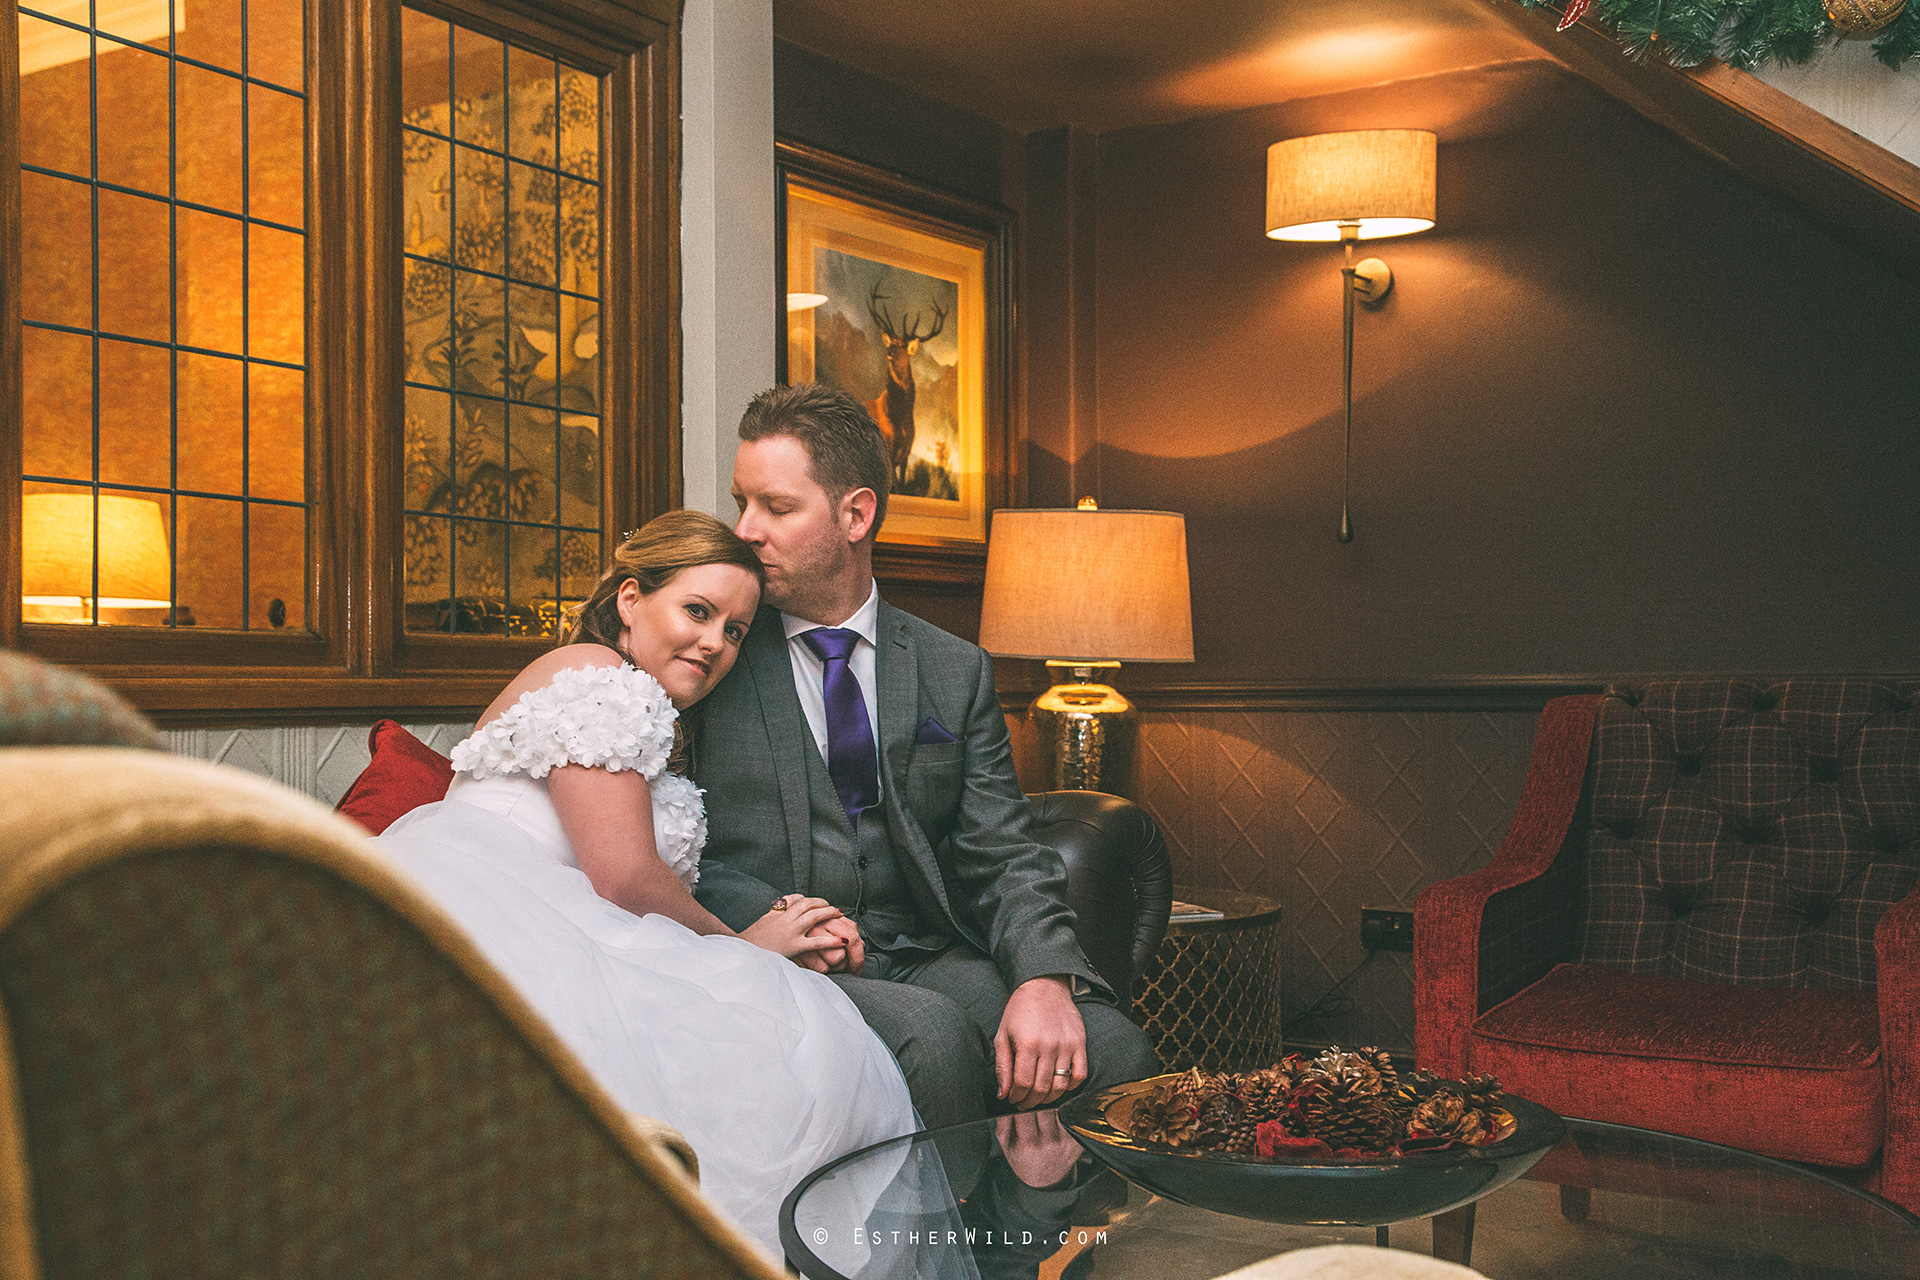 norwich_wedding_norfolk_norwich_castle_photography (21).jpg